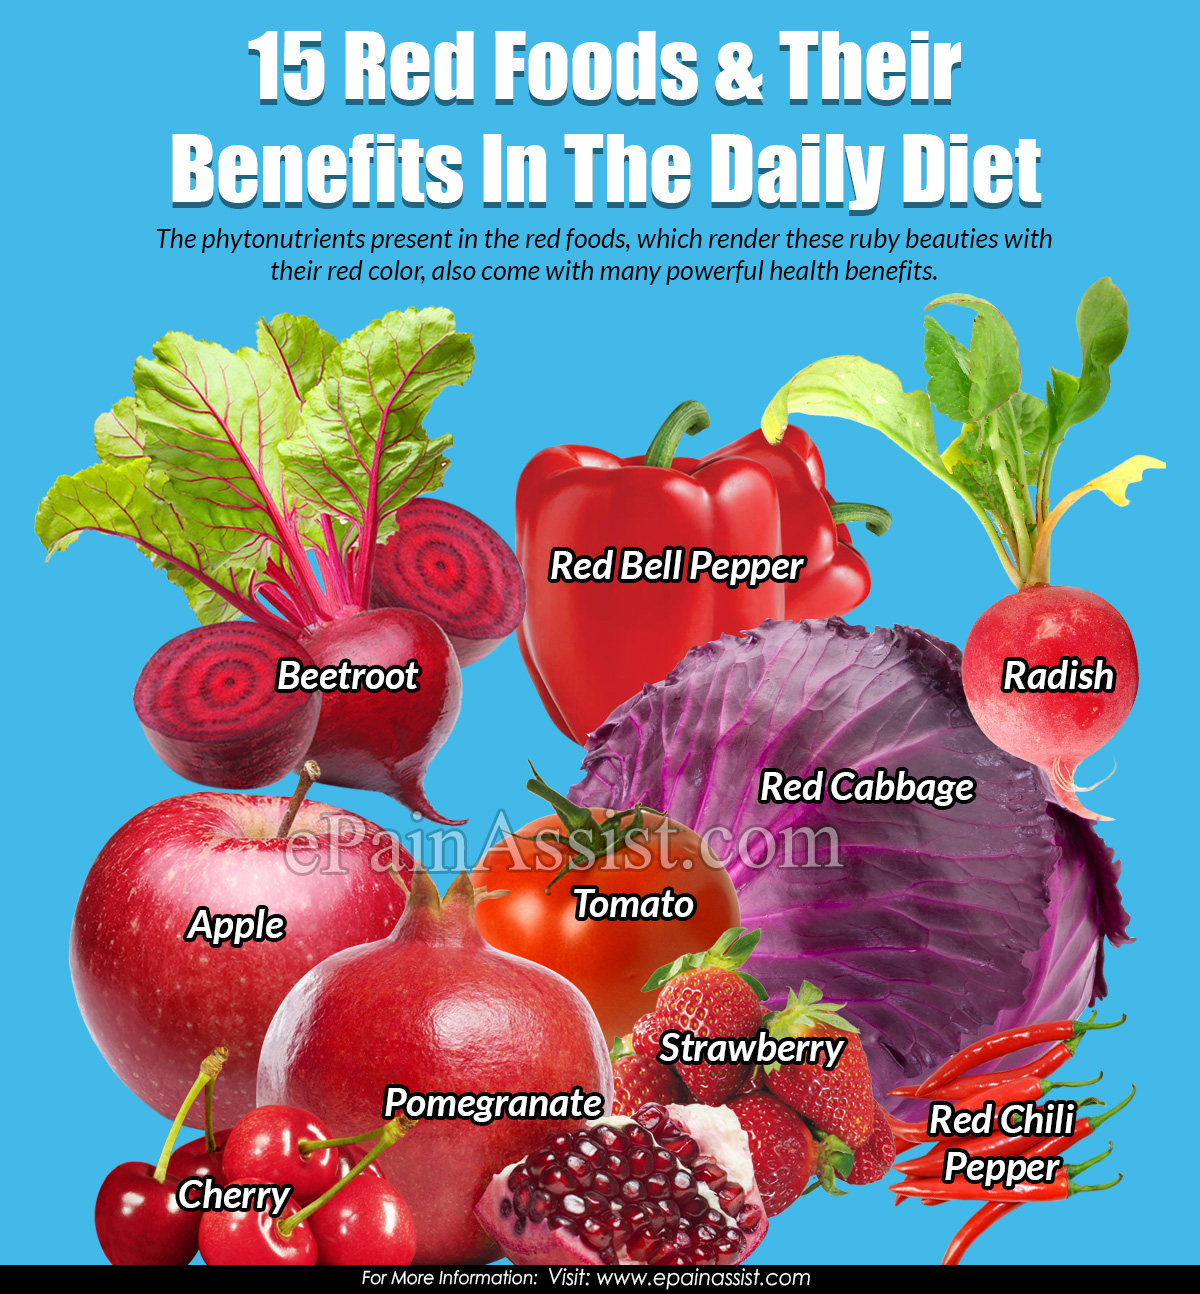 15 Red Foods & Their Benefits In The Daily Diet